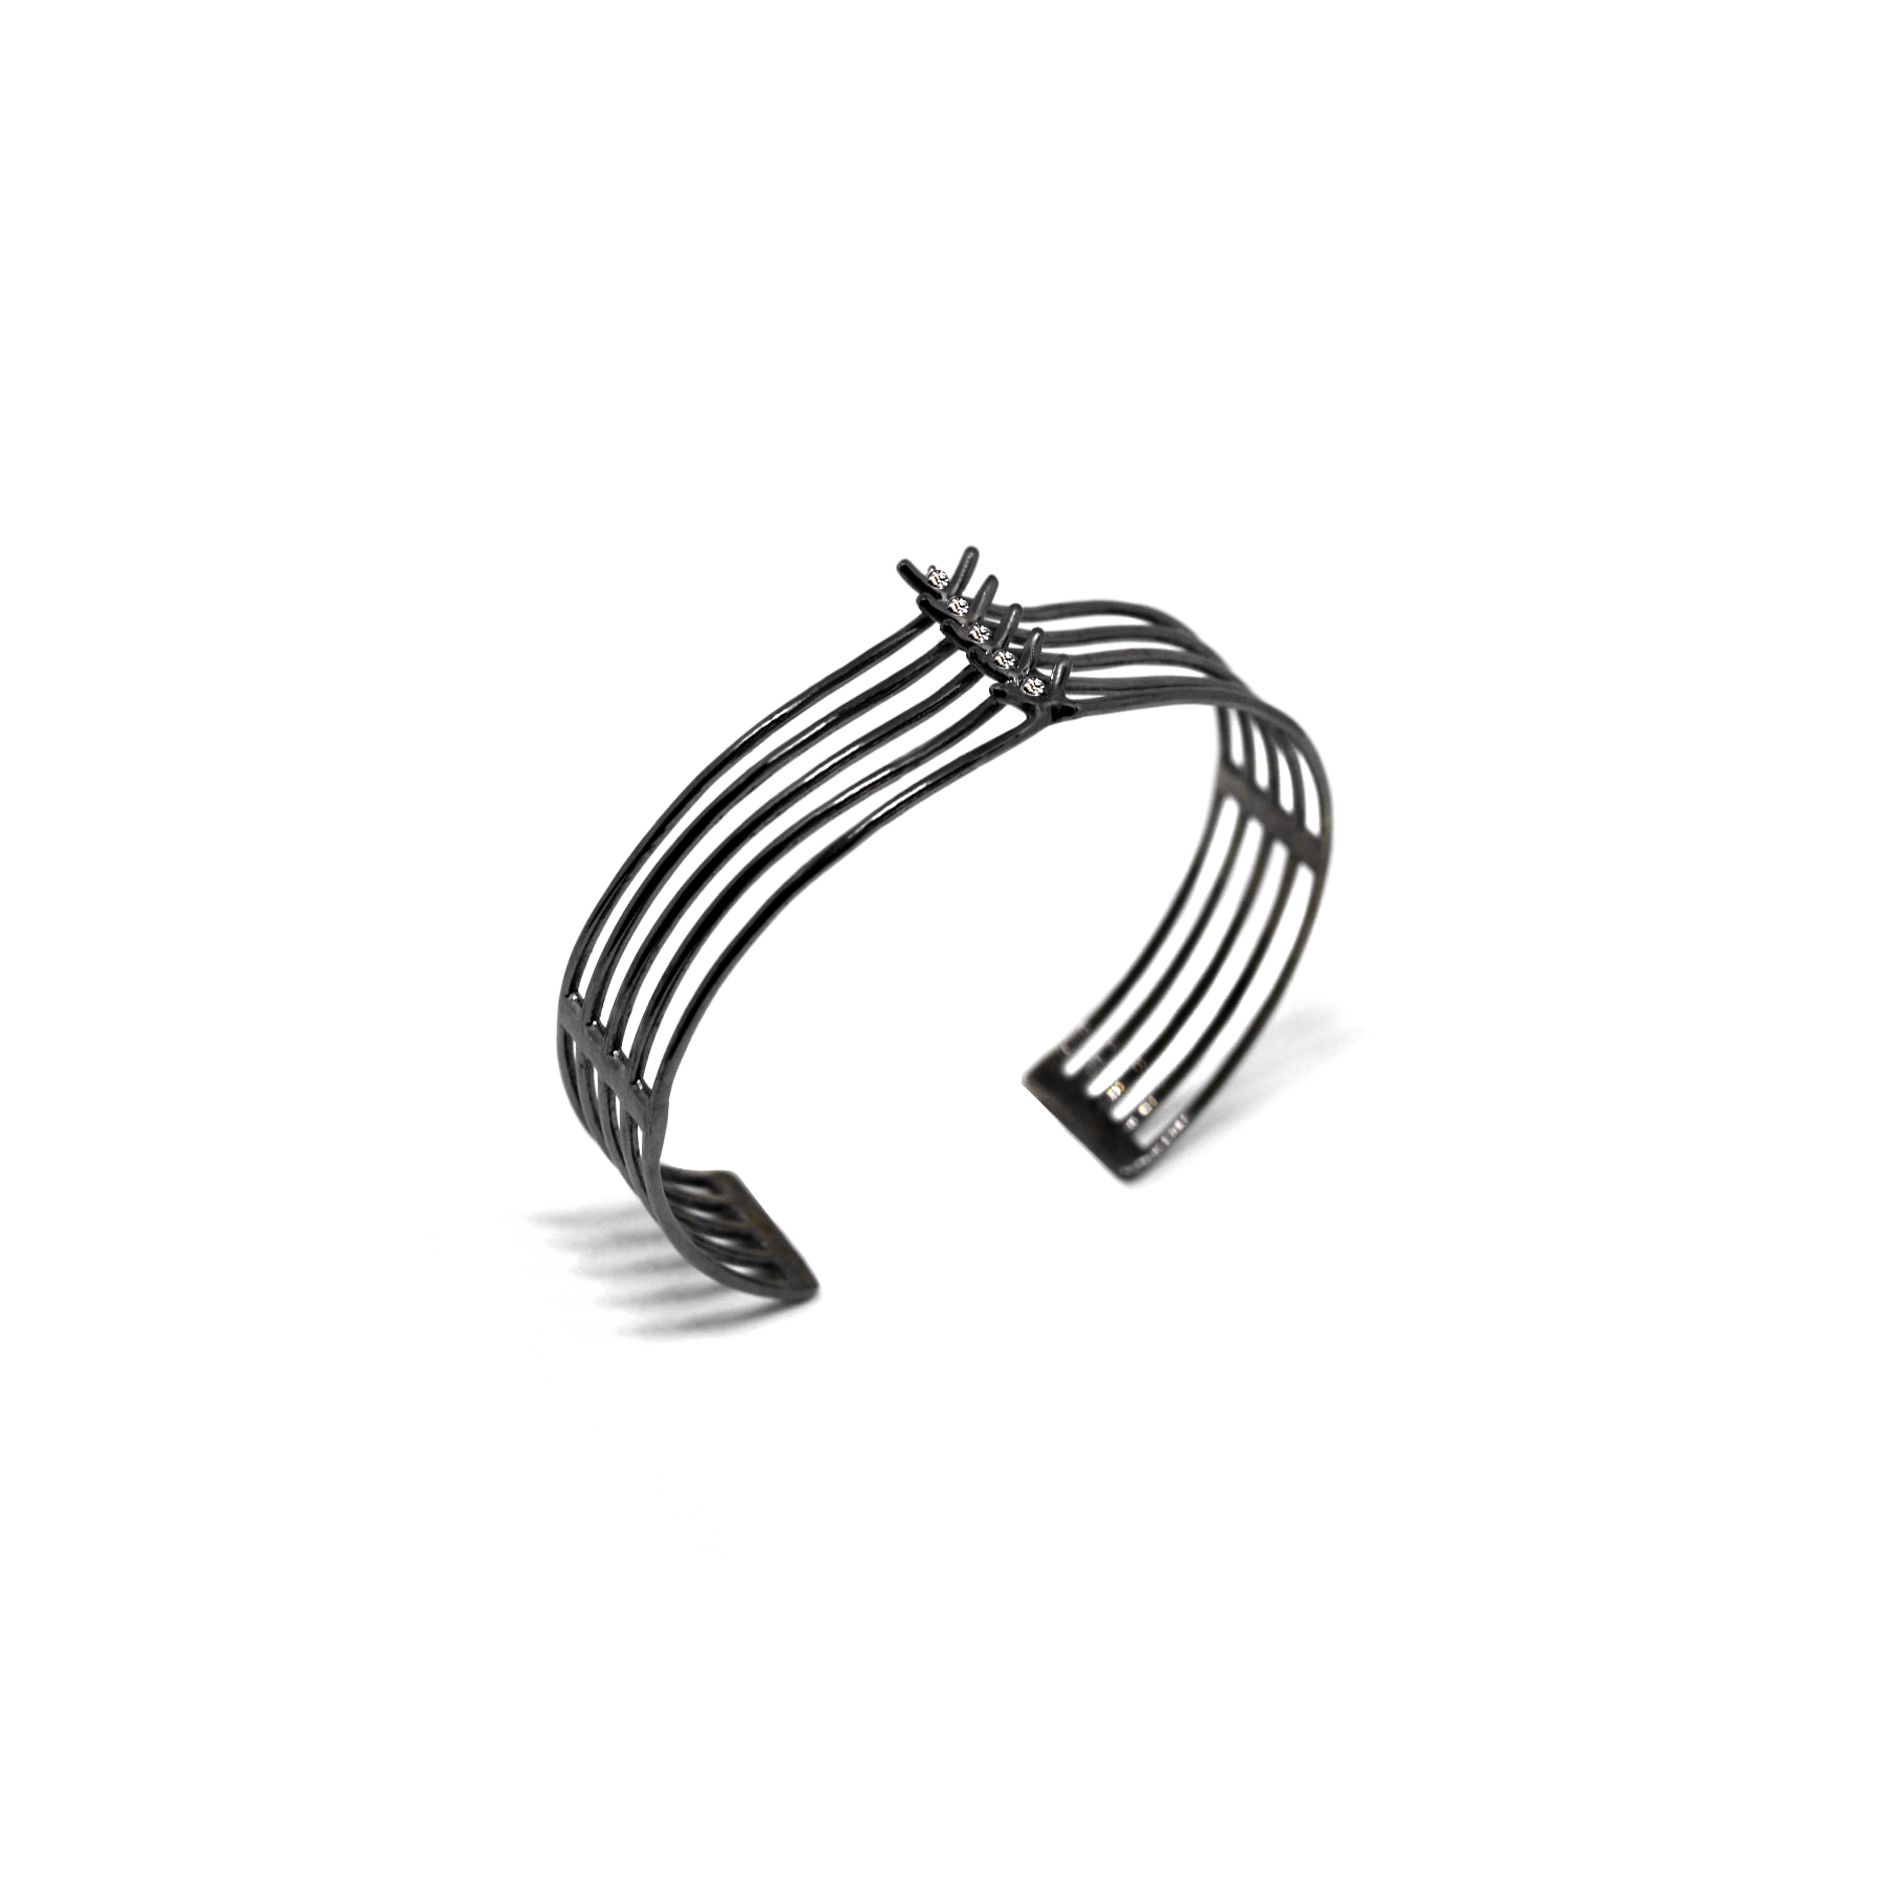 5 element 'Spinae' bracelet Bracelet in black silver